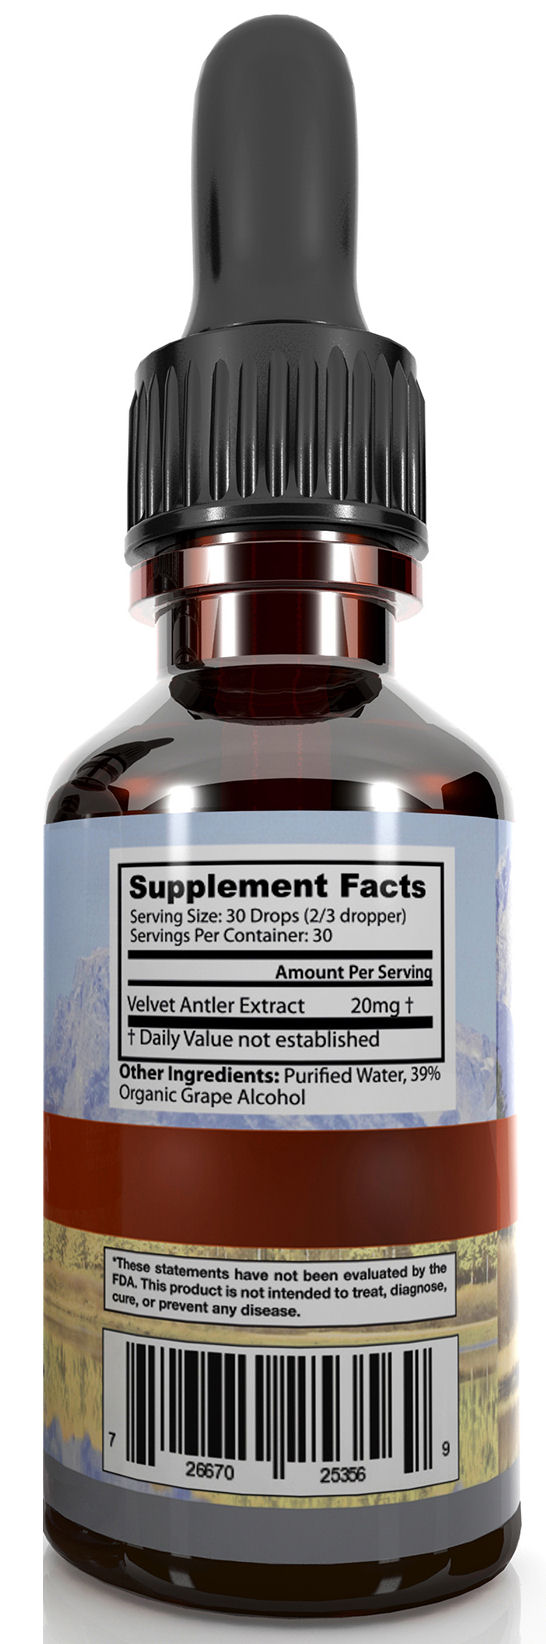 Deer Antler Velvet Extract Gold Supplement Facts